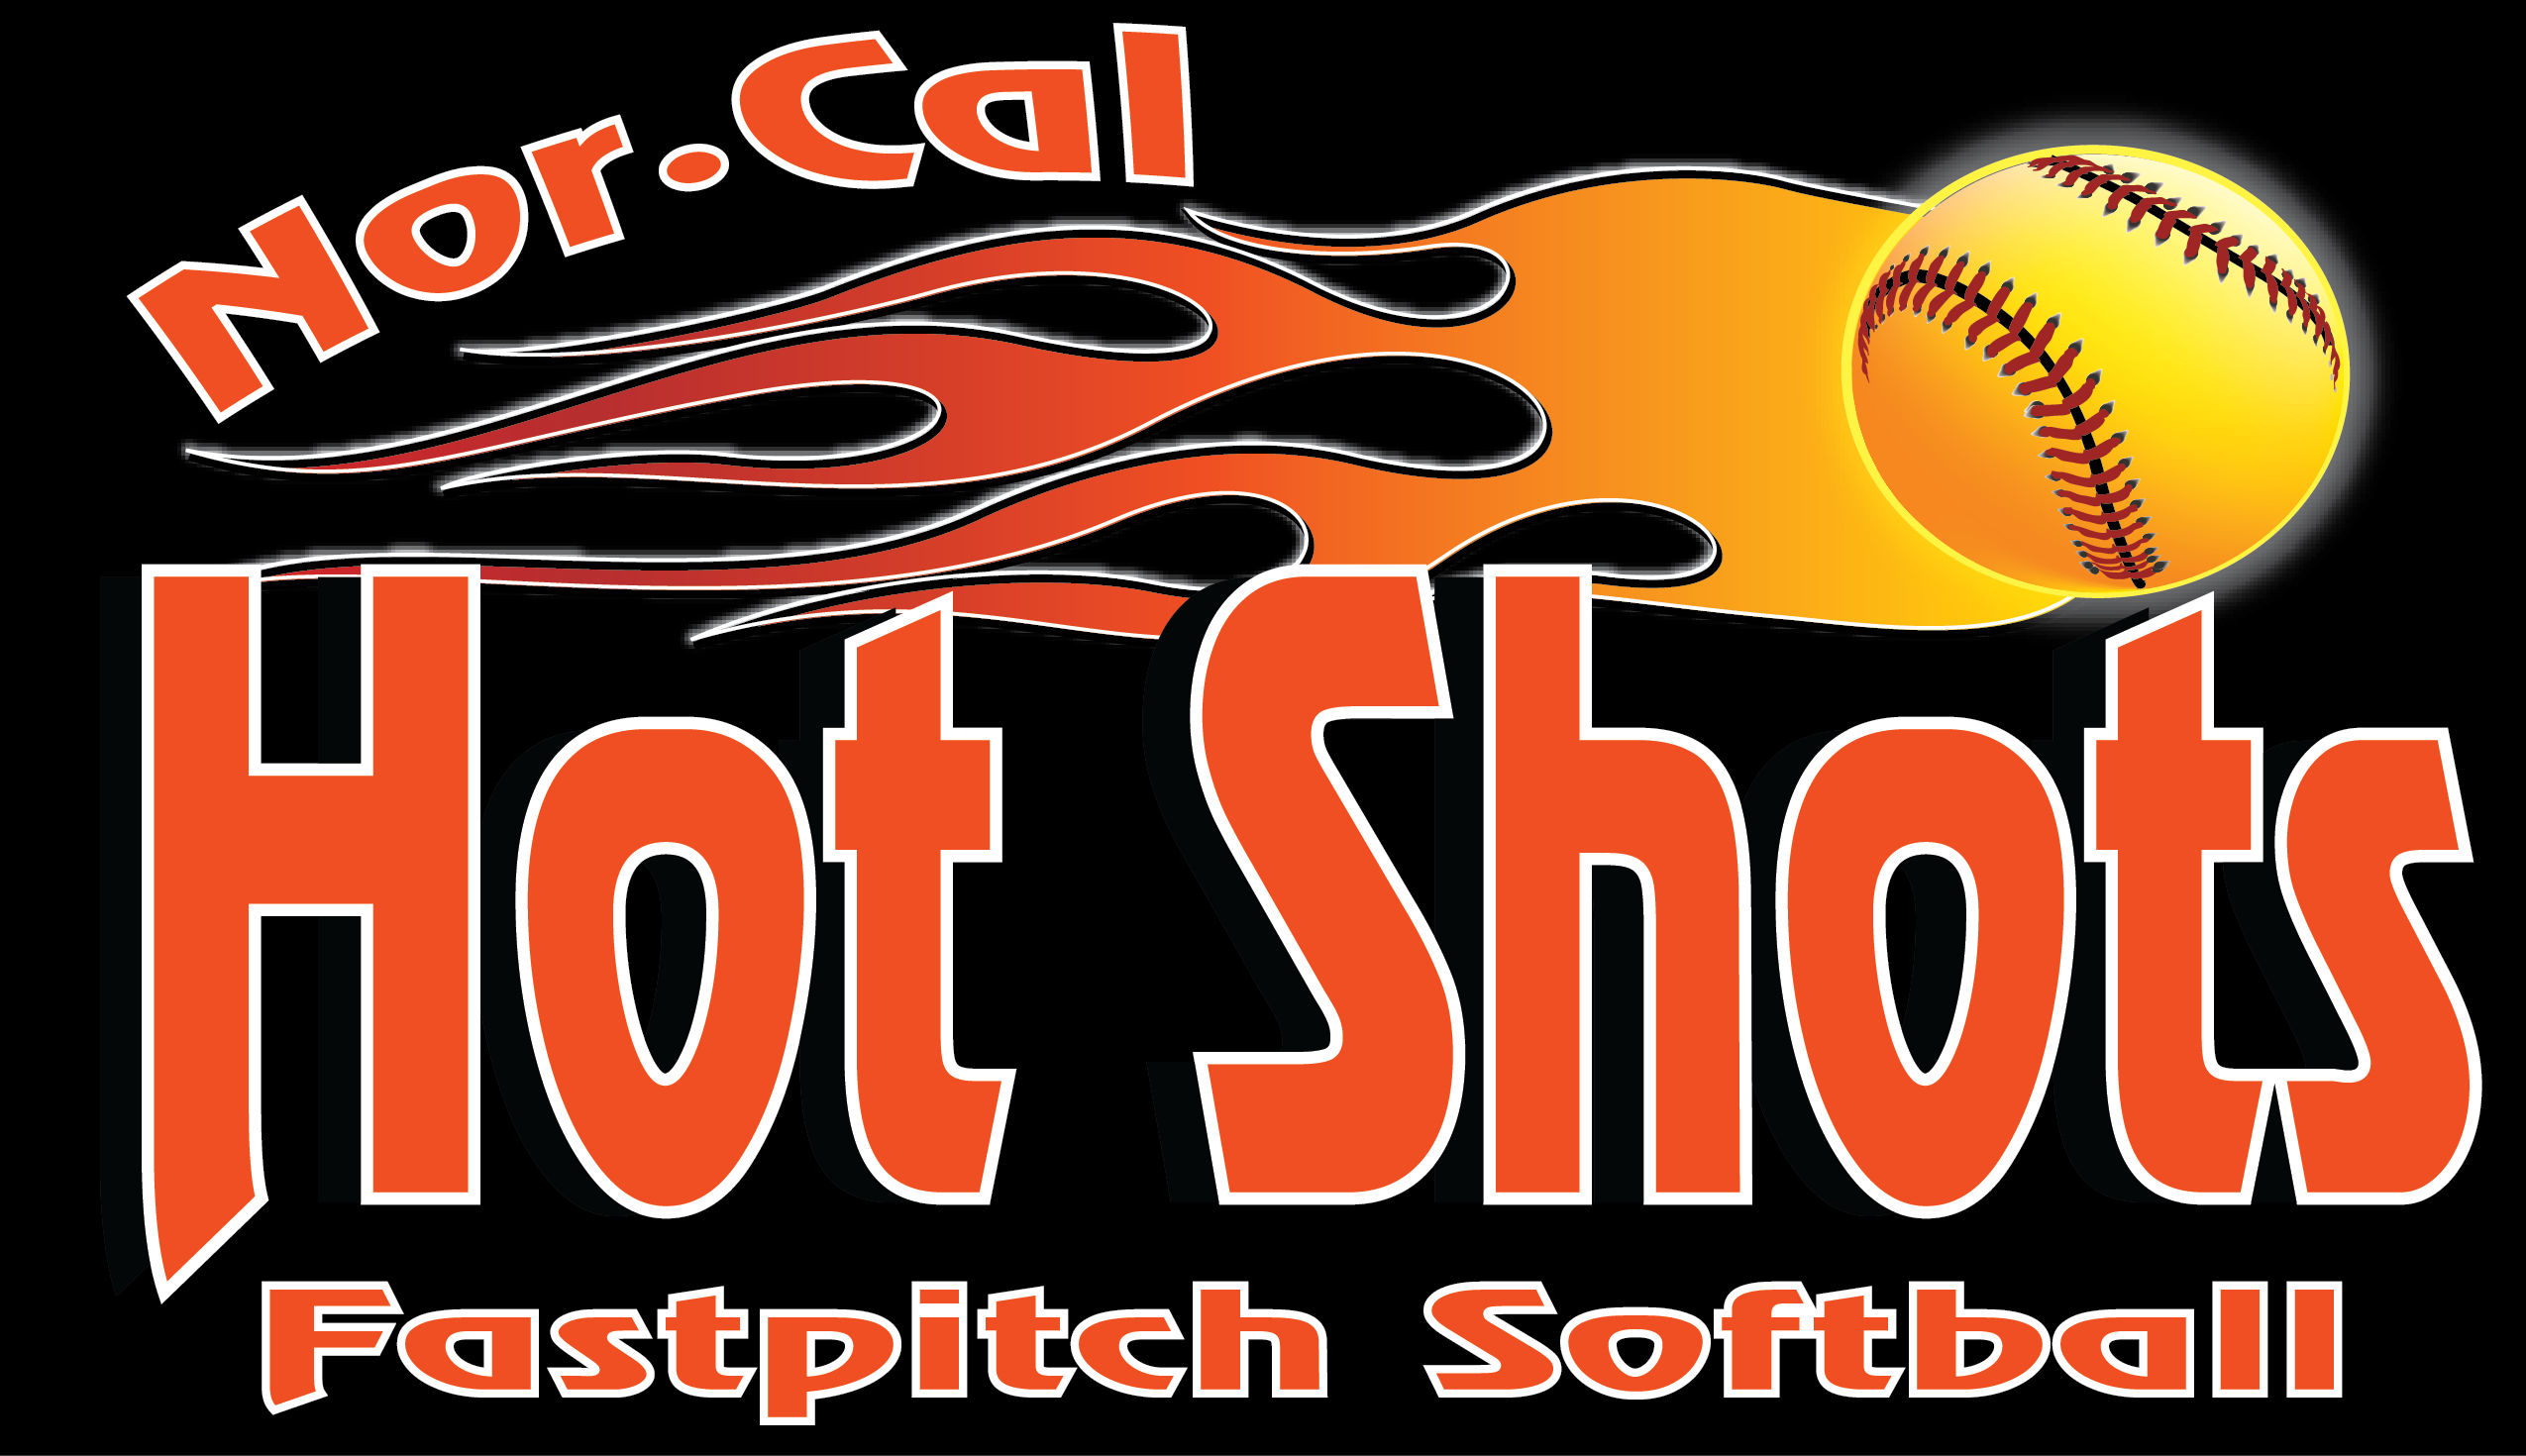 NORCAL HOT SHOTS FASTPITCH SOFTBALL